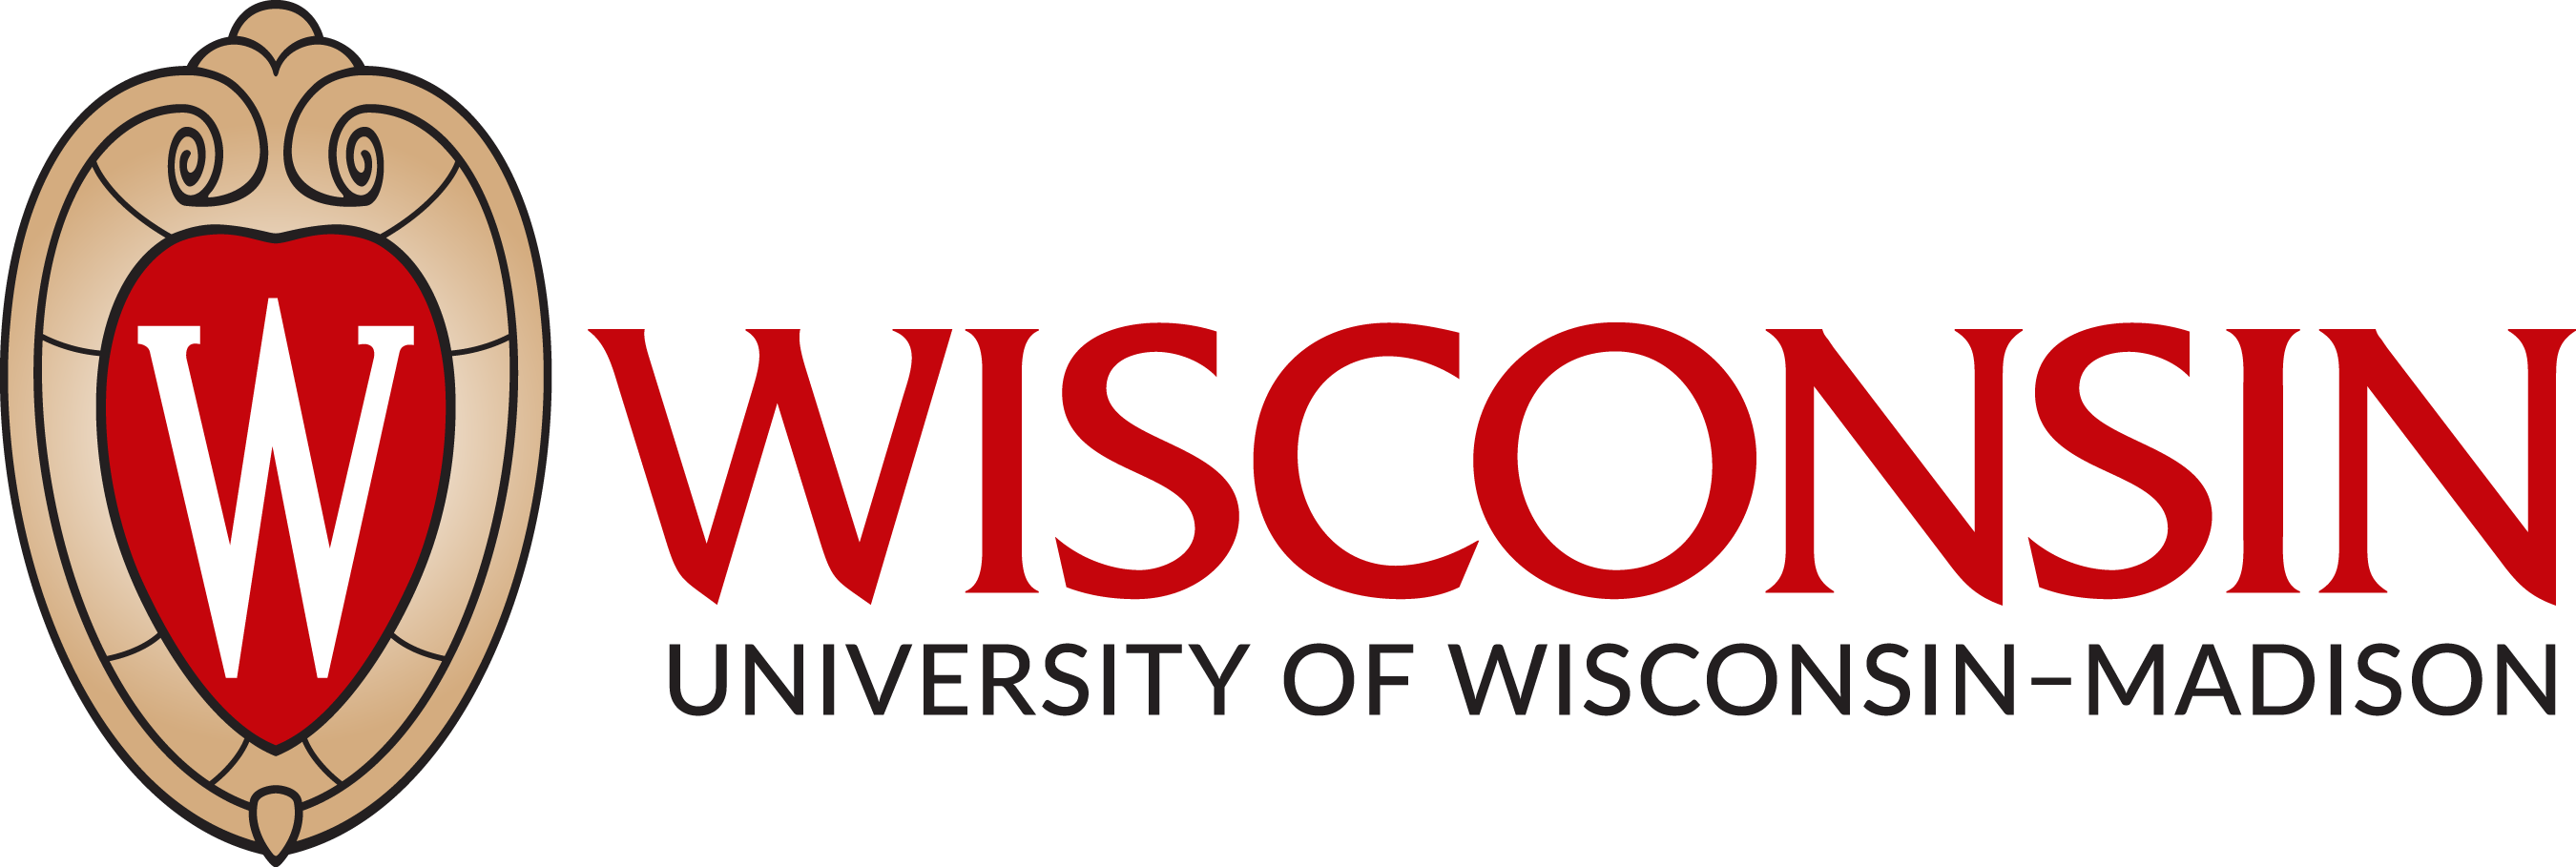 Image result for University of Wisconsin logo